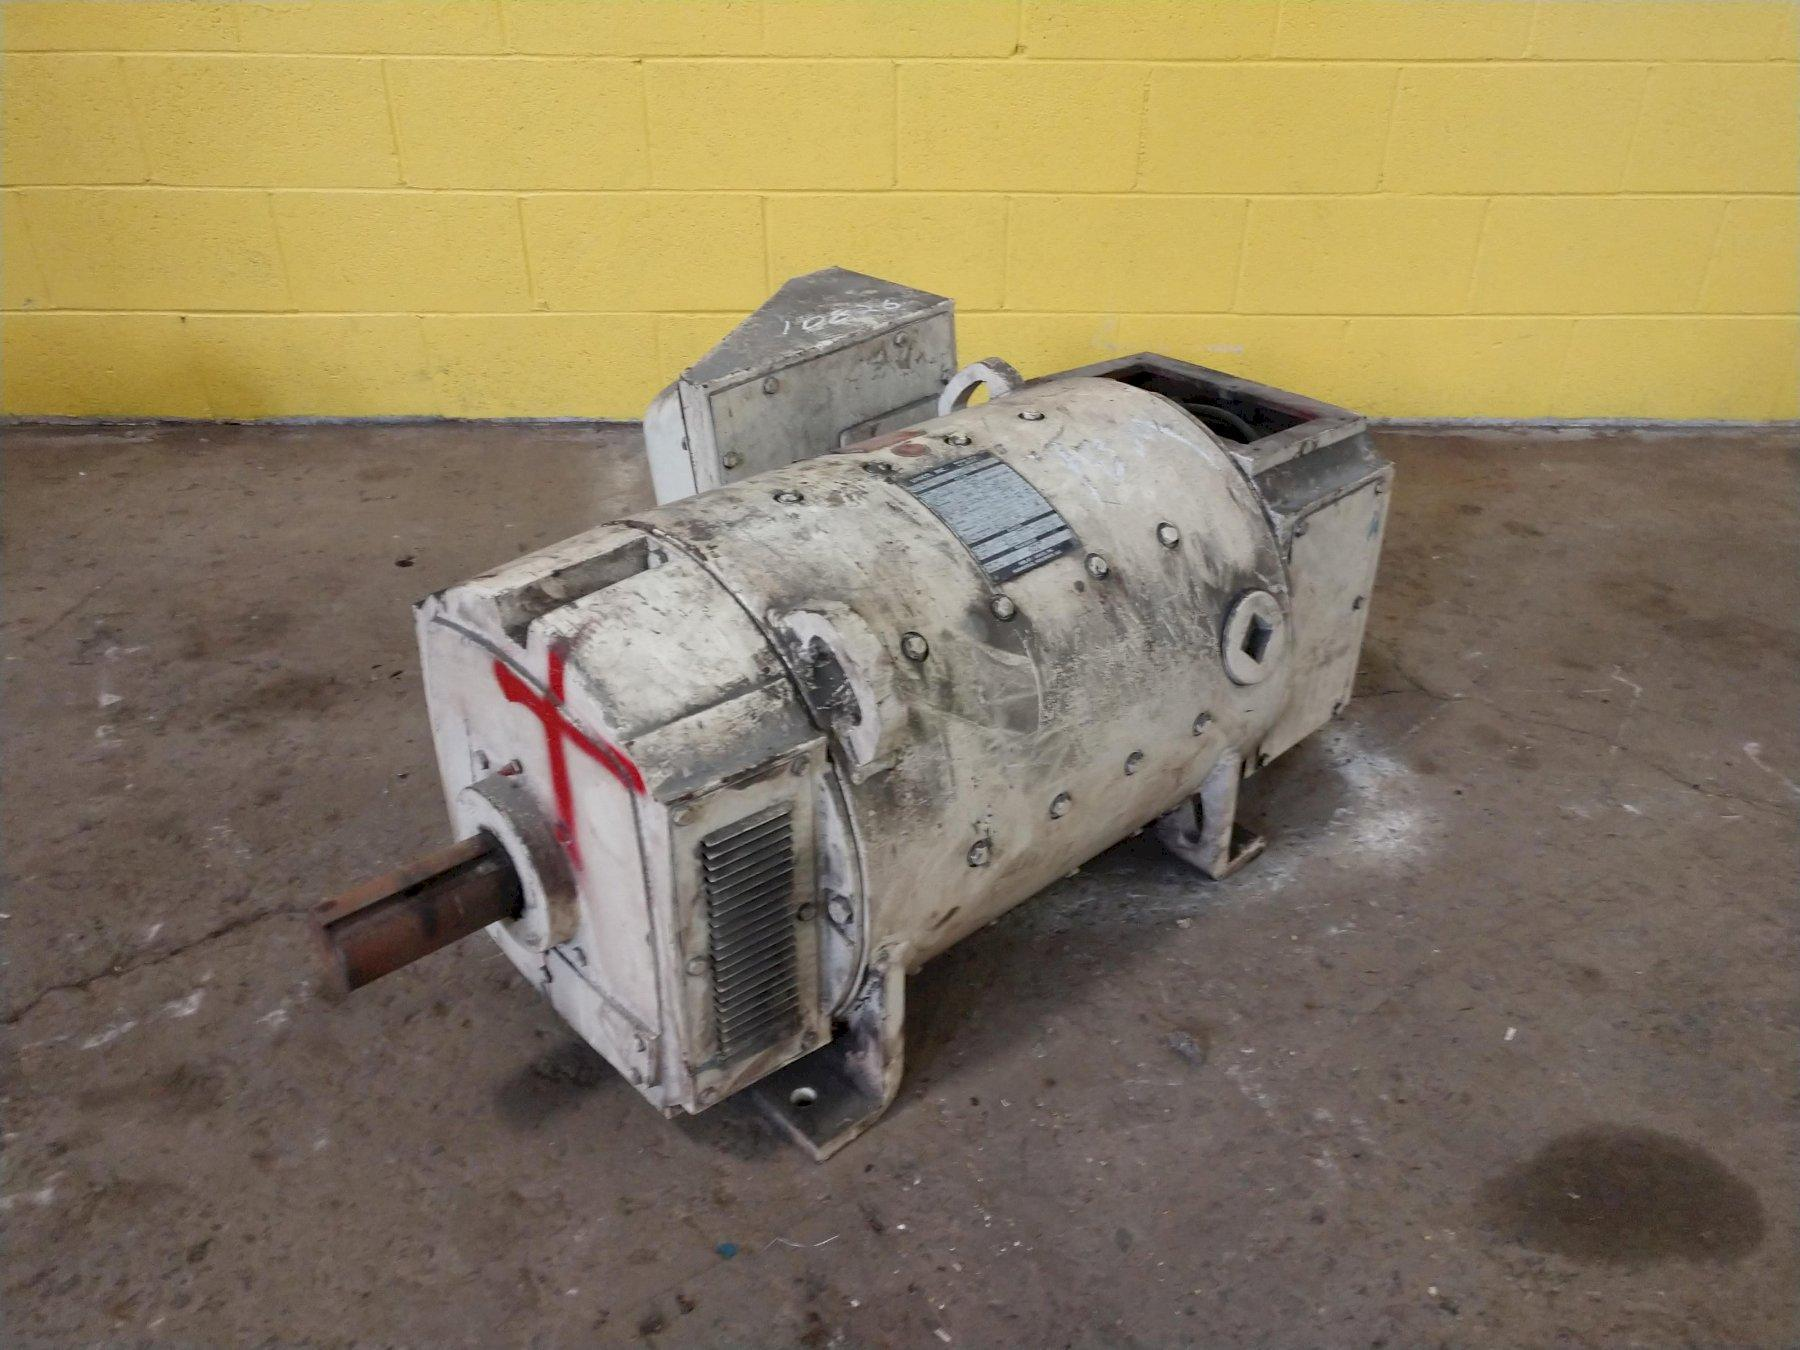 109 HP UNICO MODEL GE-680-1500 DC MOTOR: STOCK #10826